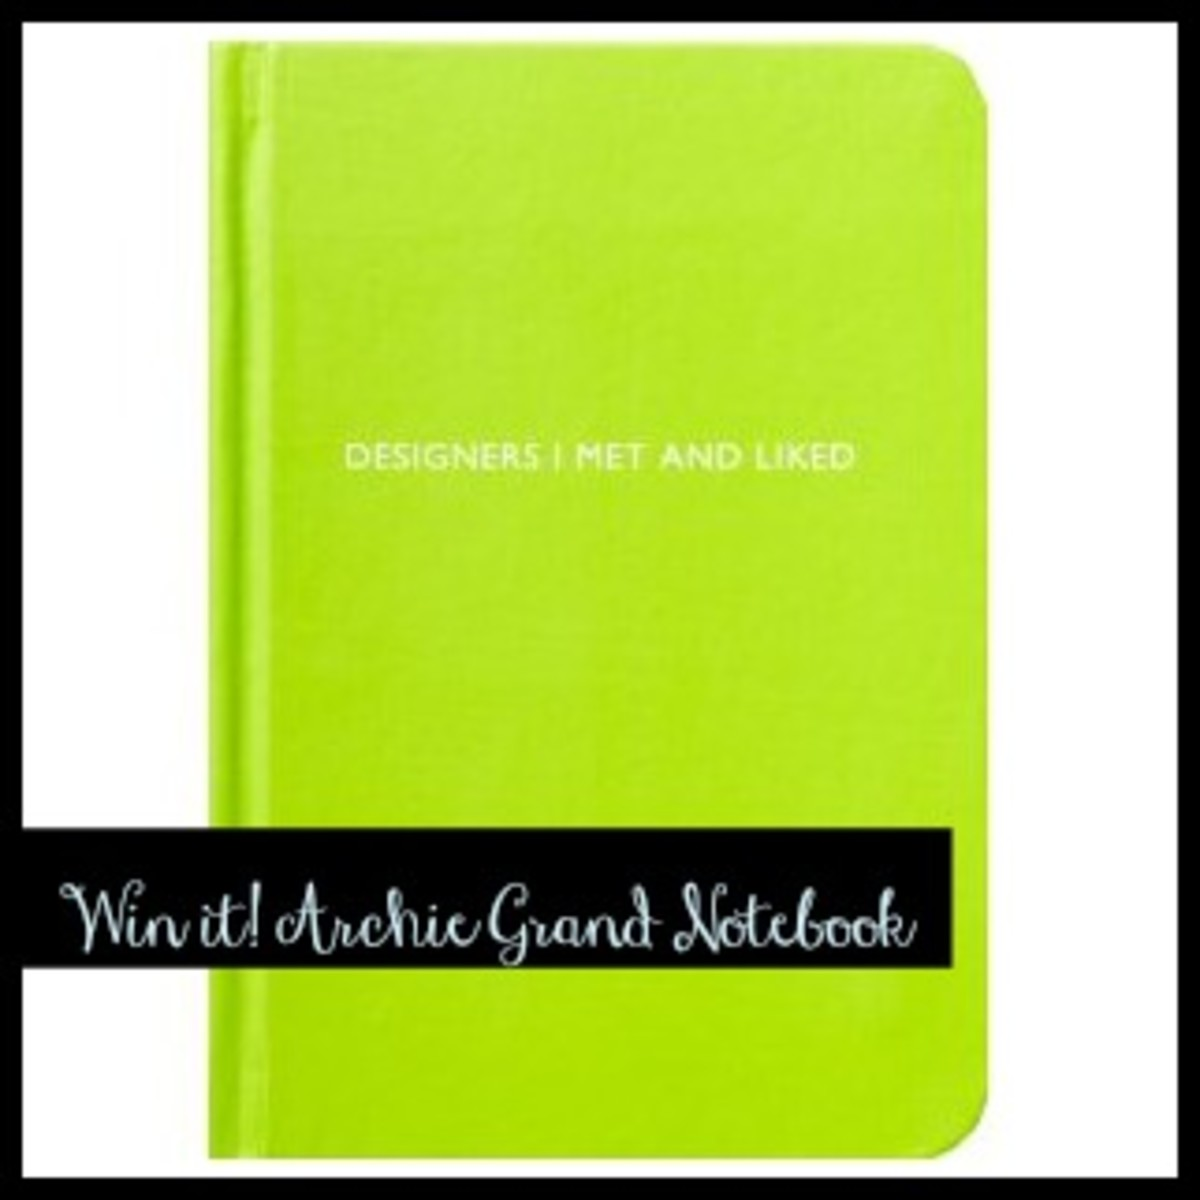 archie grand notebook